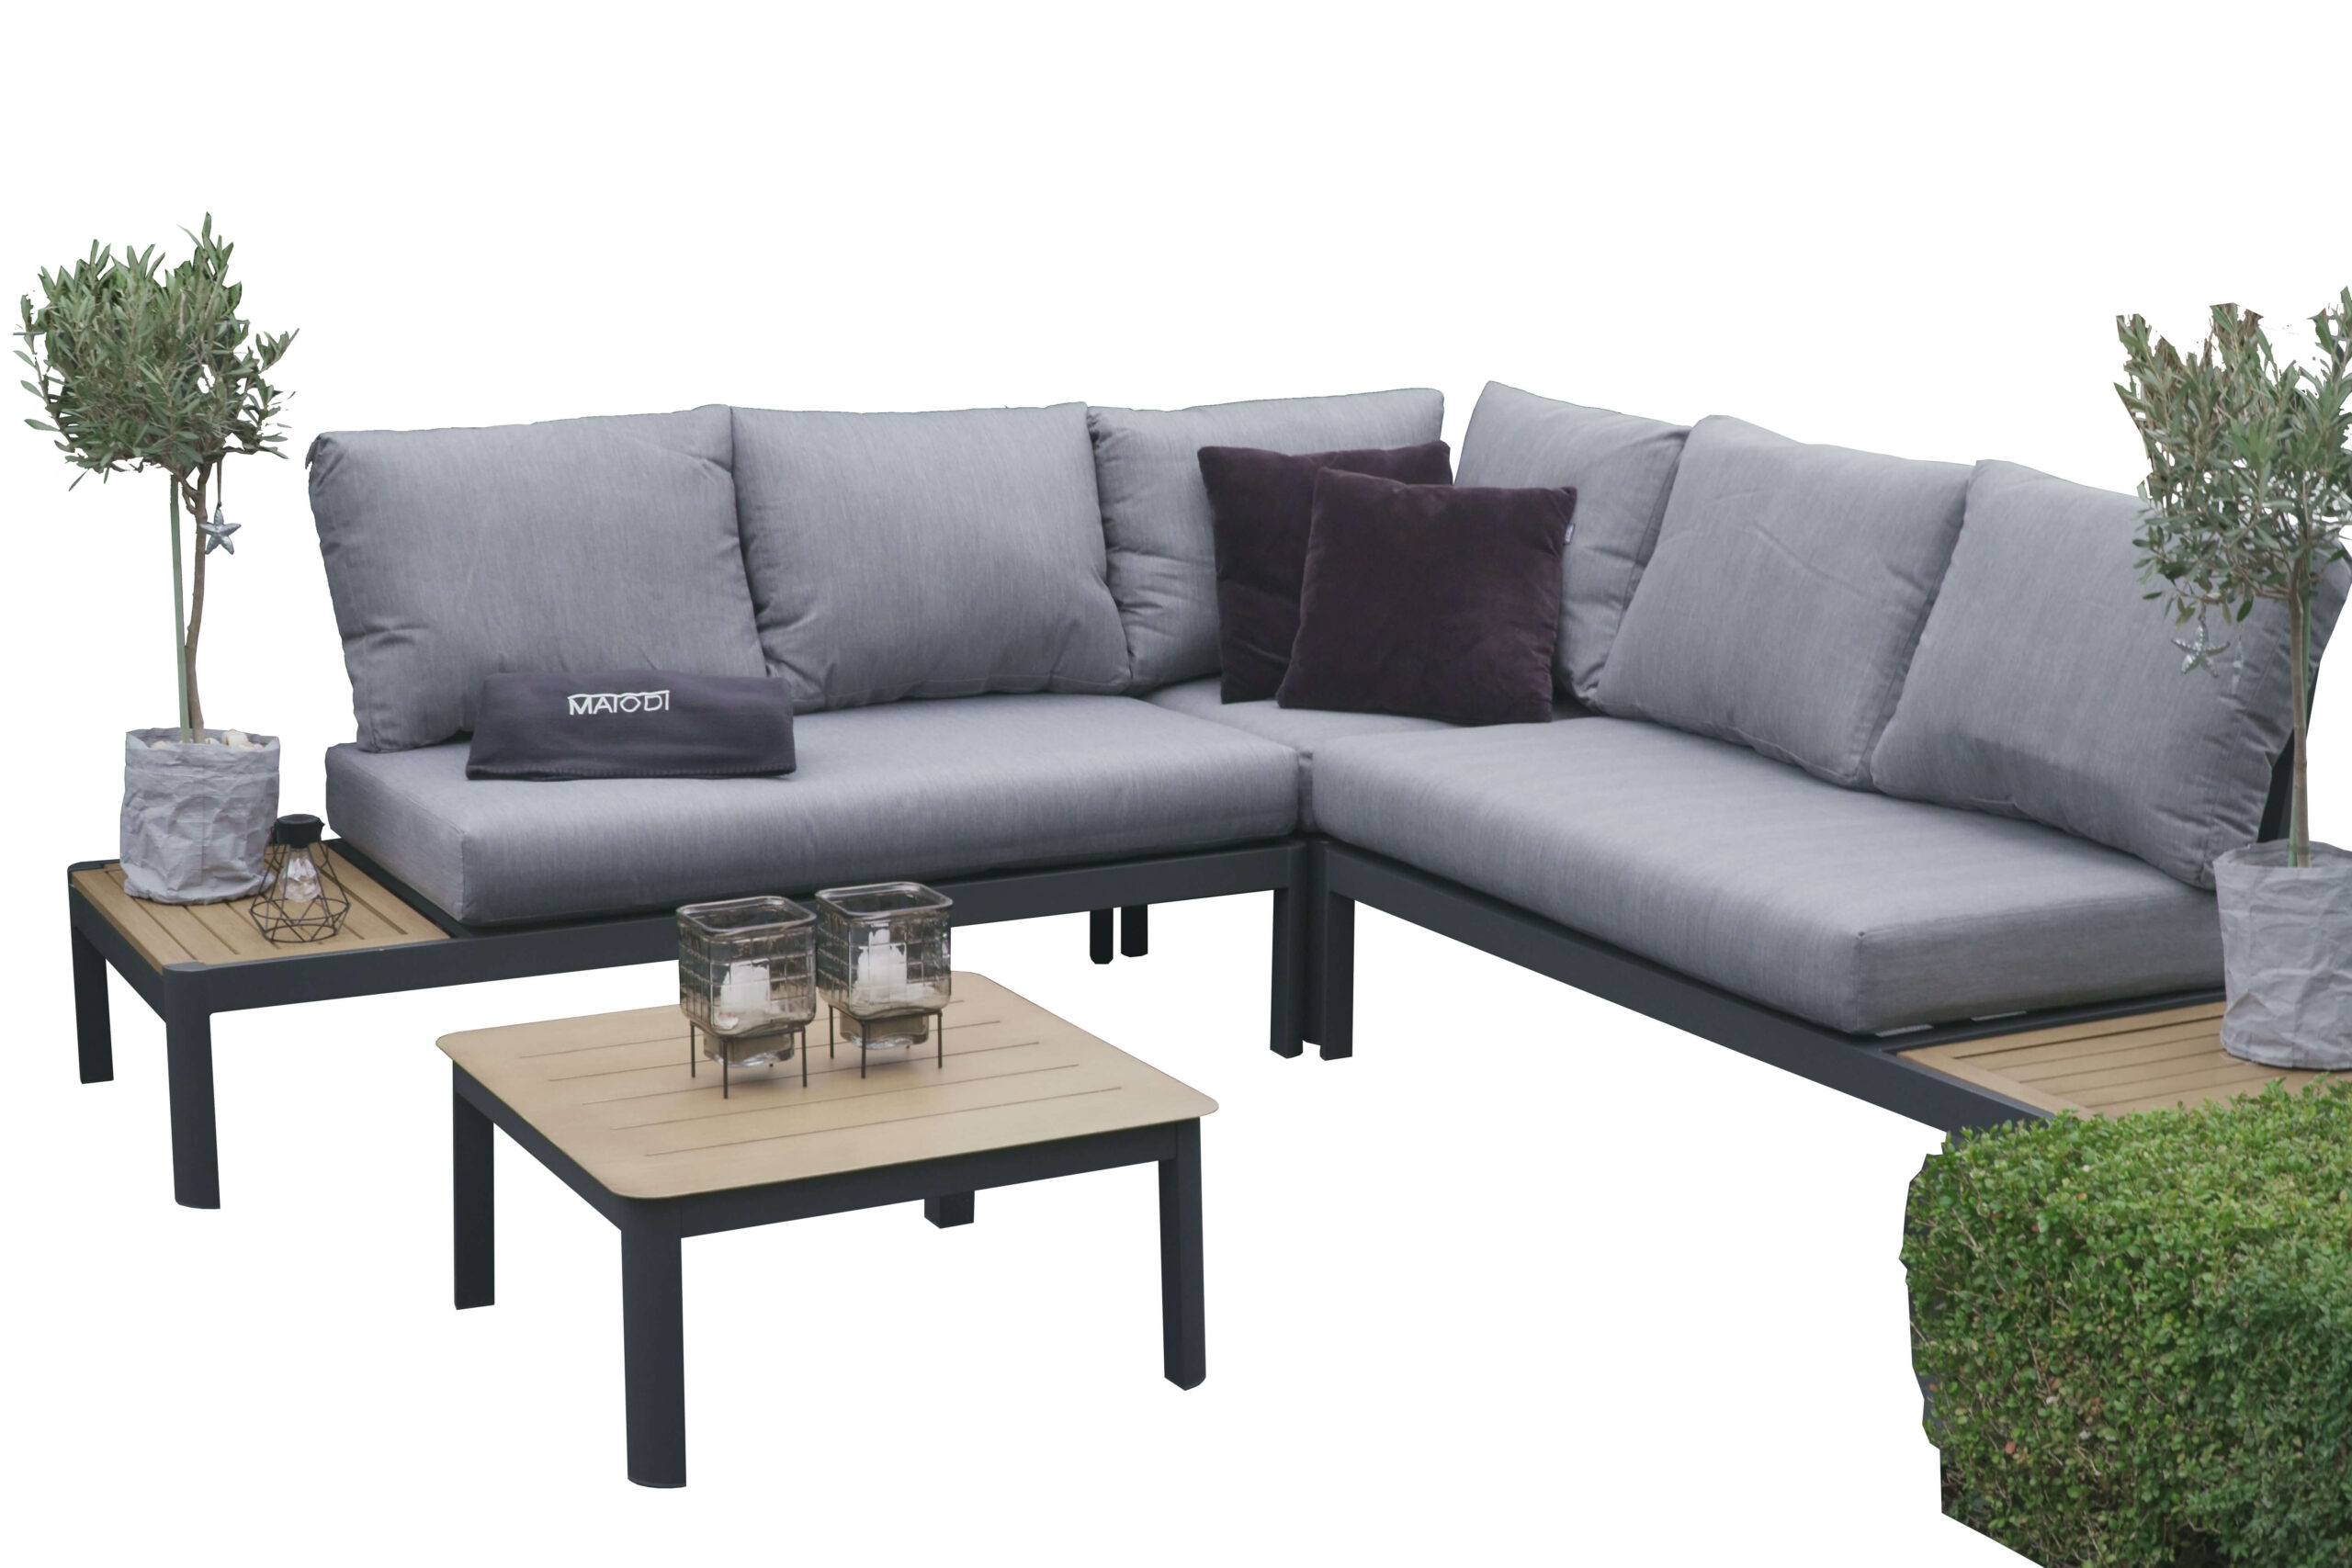 Full Size of Loungesofa Set Lotus Sofa Wohnmbel Wohnzimmer Couch Terrasse